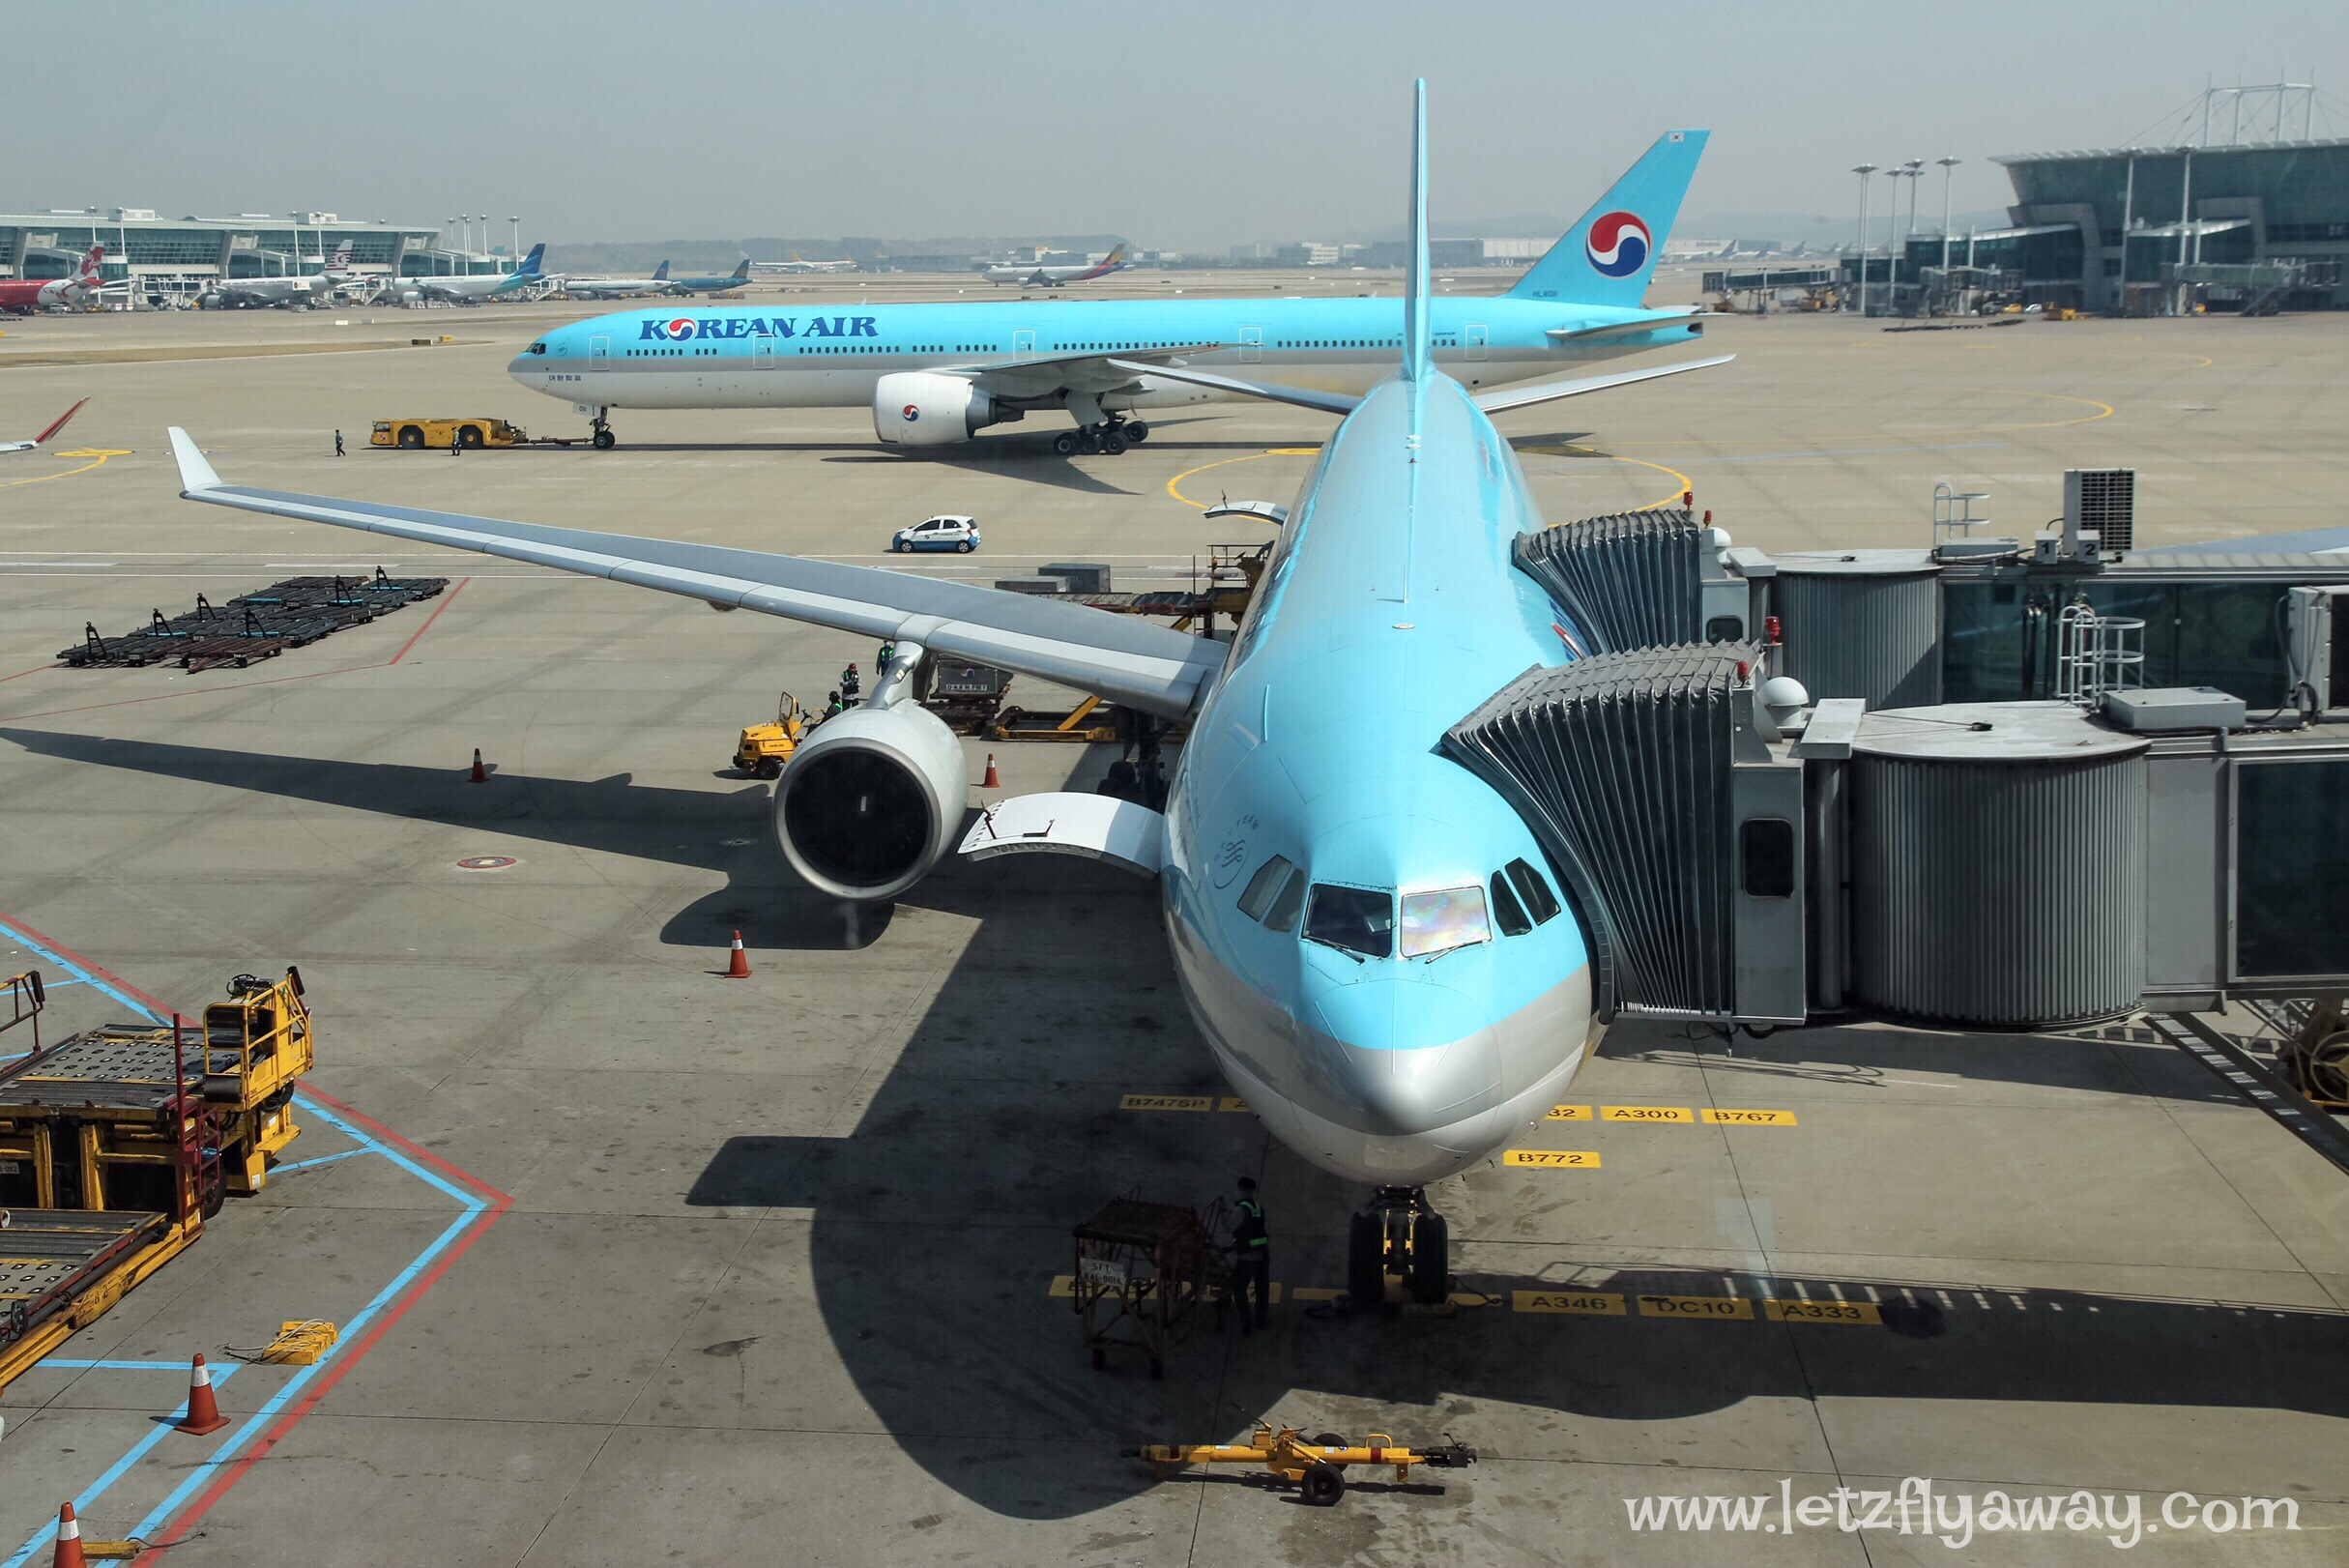 Korean Air Economy Class Airbus 330